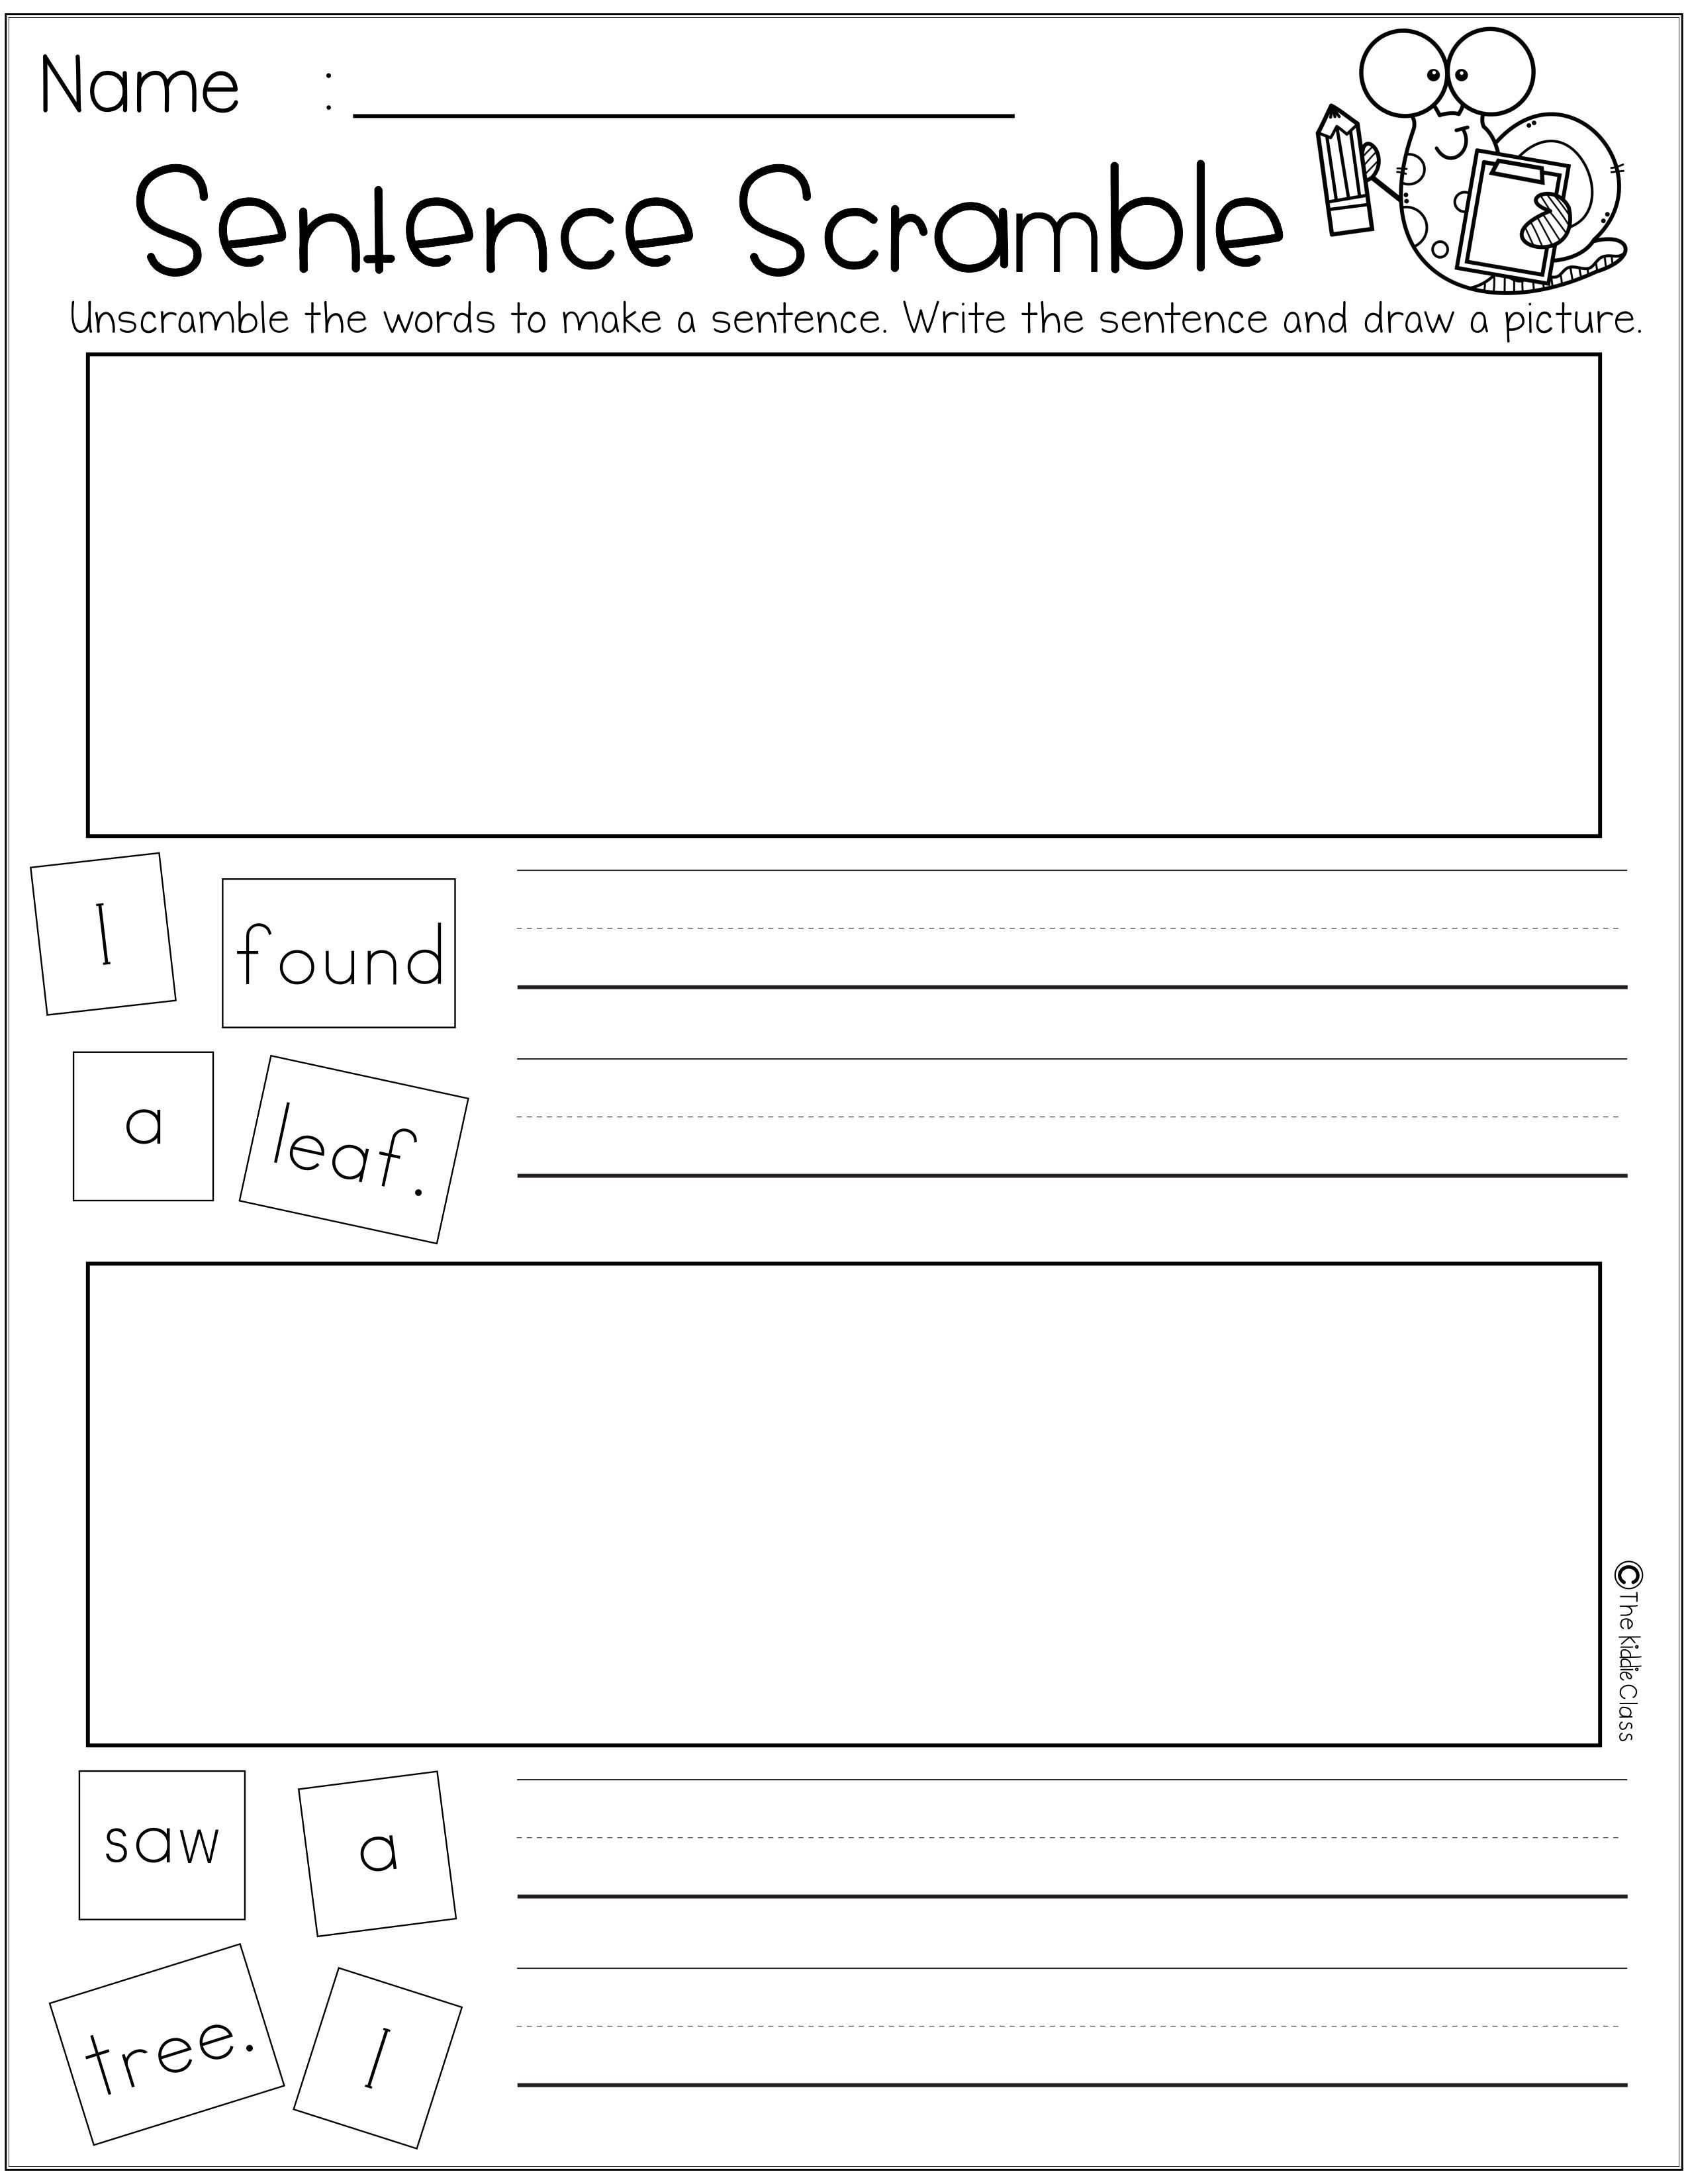 Re 4 Pages Of Free Sentence Scramble Worksheet In This Packet Students Will Practice Writing And Drawing In Each Page This Packet Is Perfect For Kindergarten